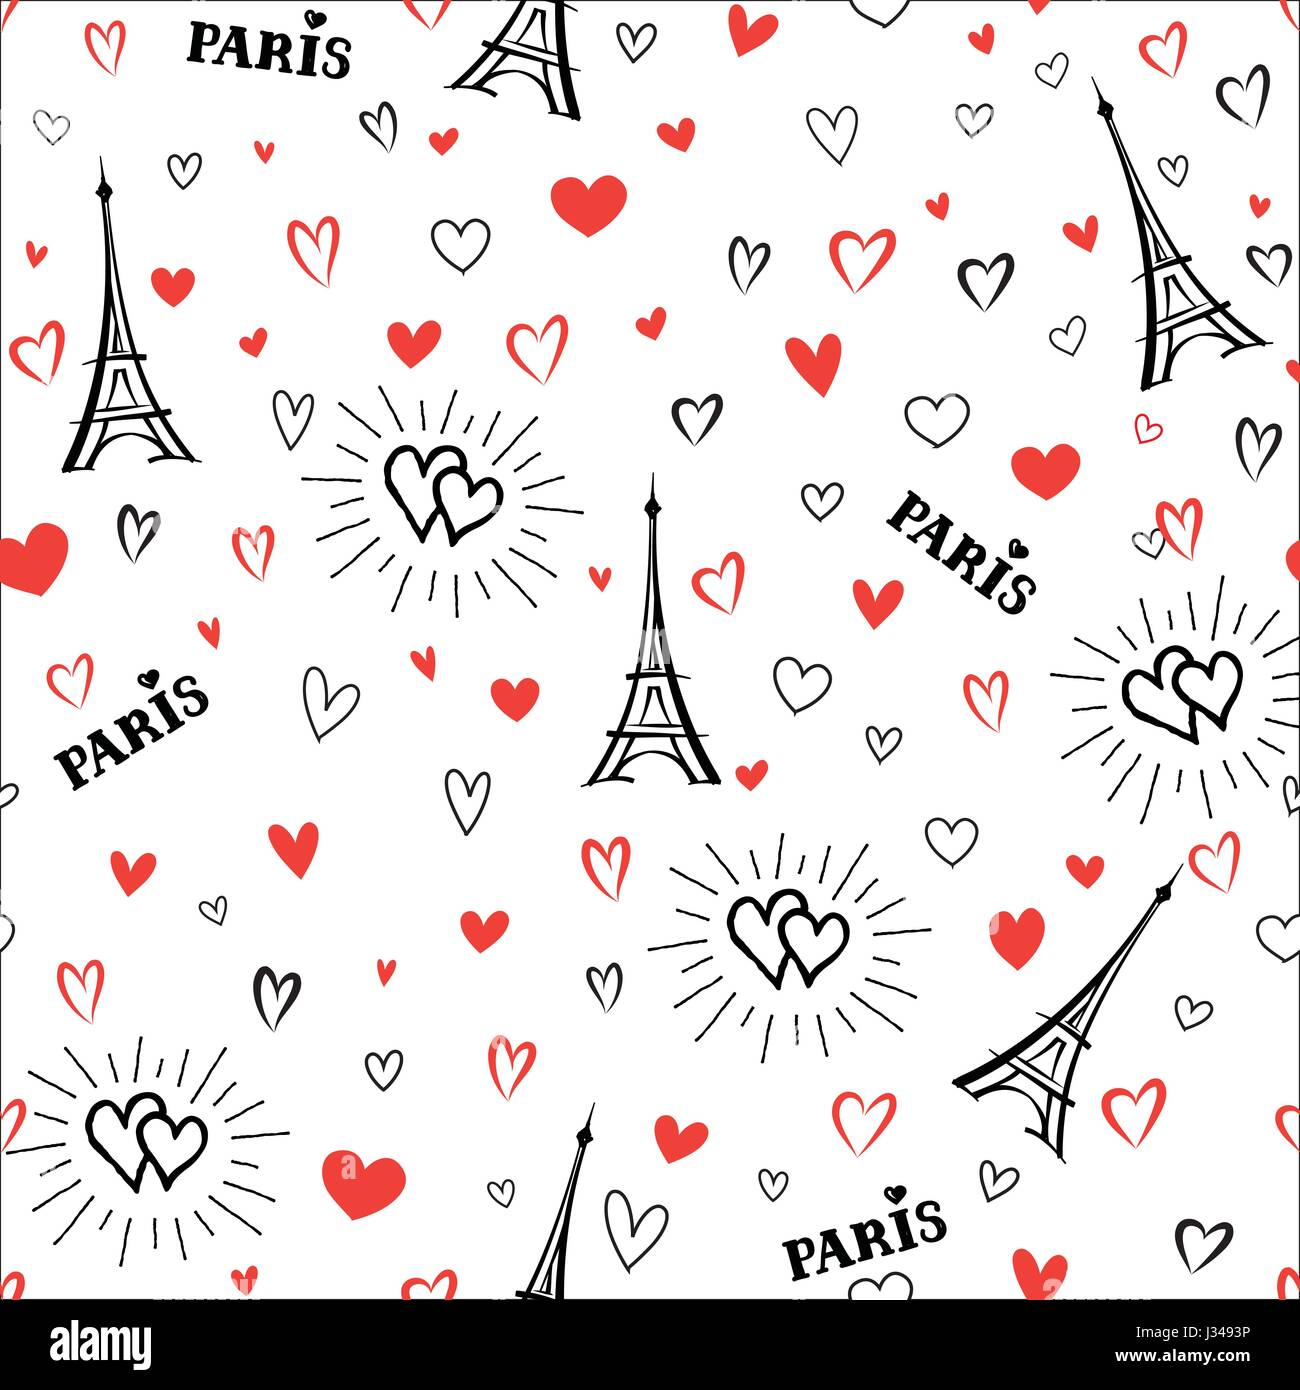 Travel France Seamless Pattern Paris City Vacation Wallpaper French Landmark Background Love Heart